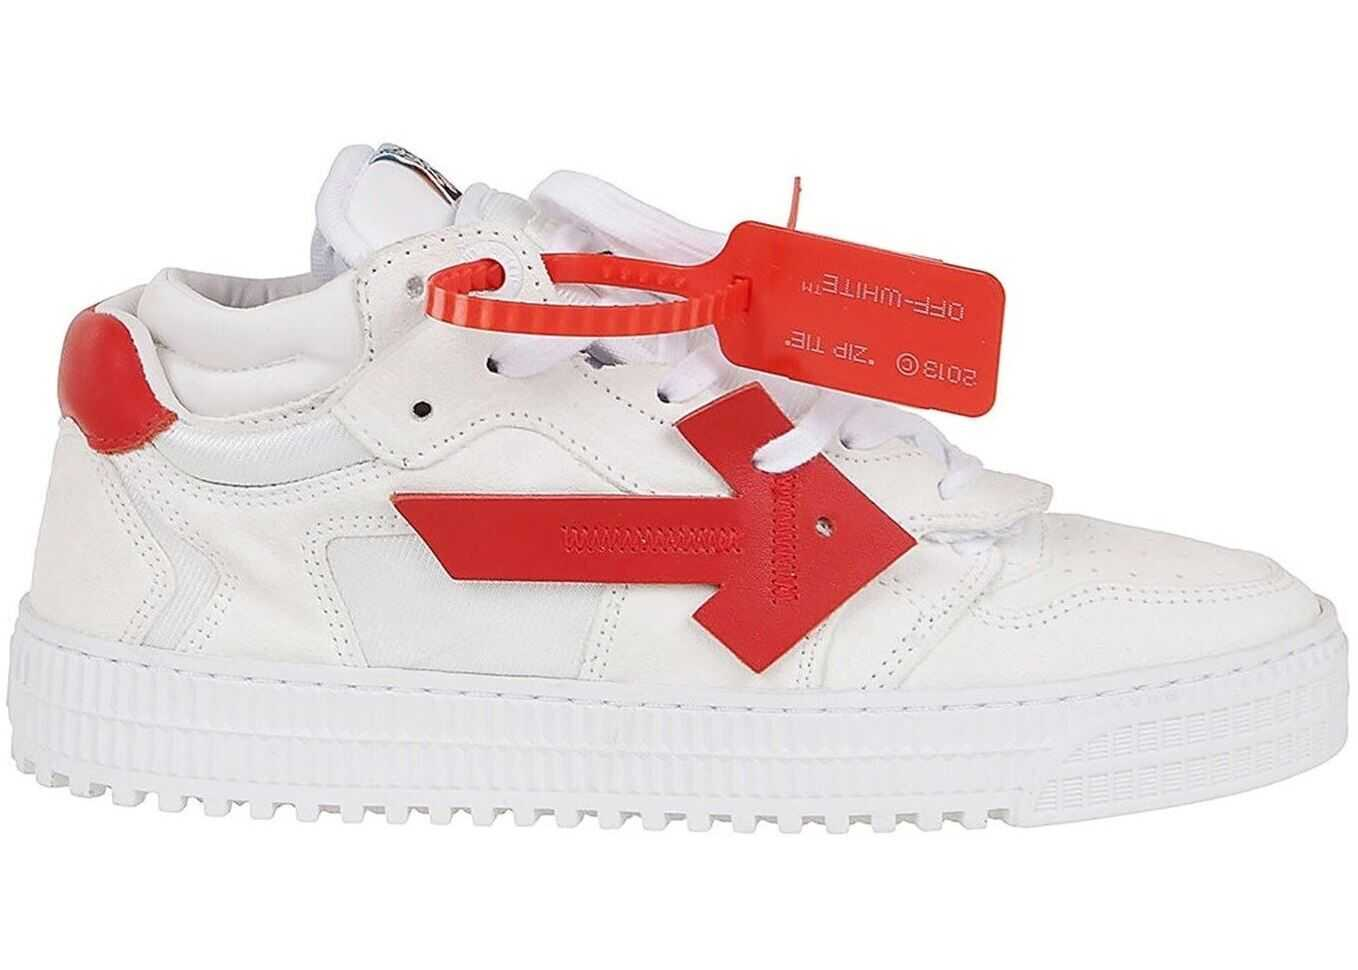 Off-White 3.0 Low Sneakers White